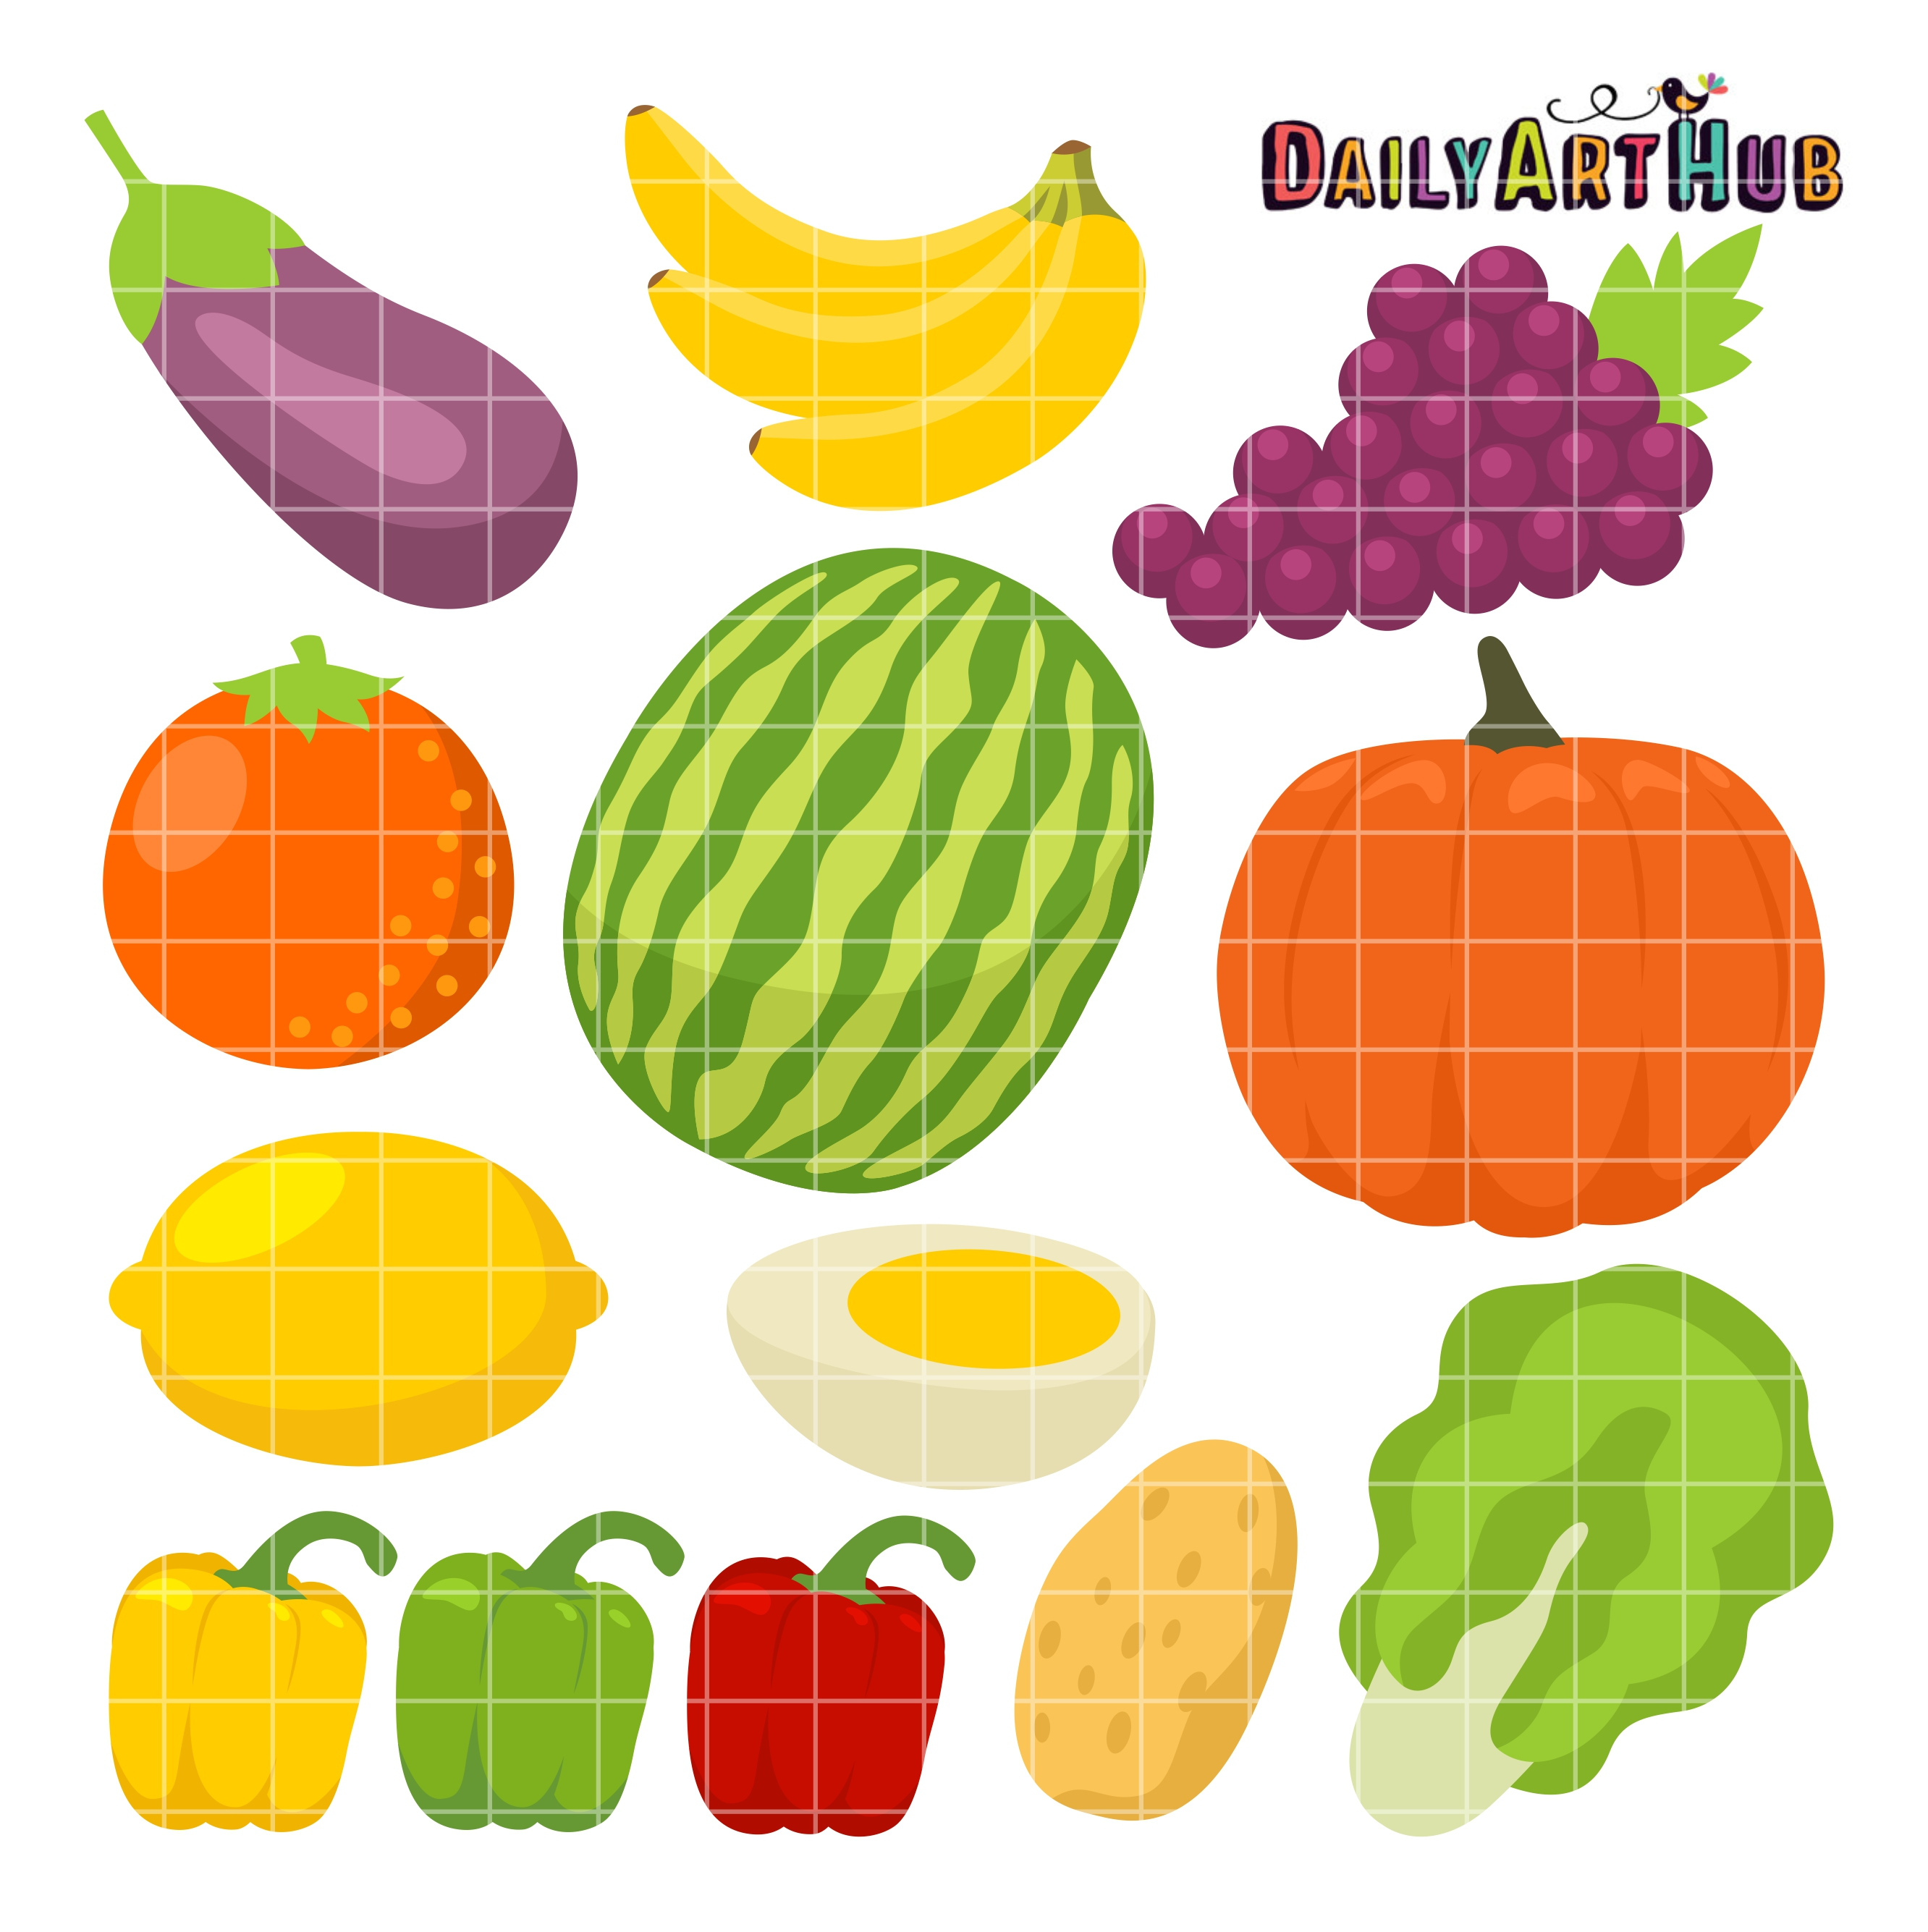 Healthy Foods Clip Art Set Daily Art Hub Free Clip Art Everyday